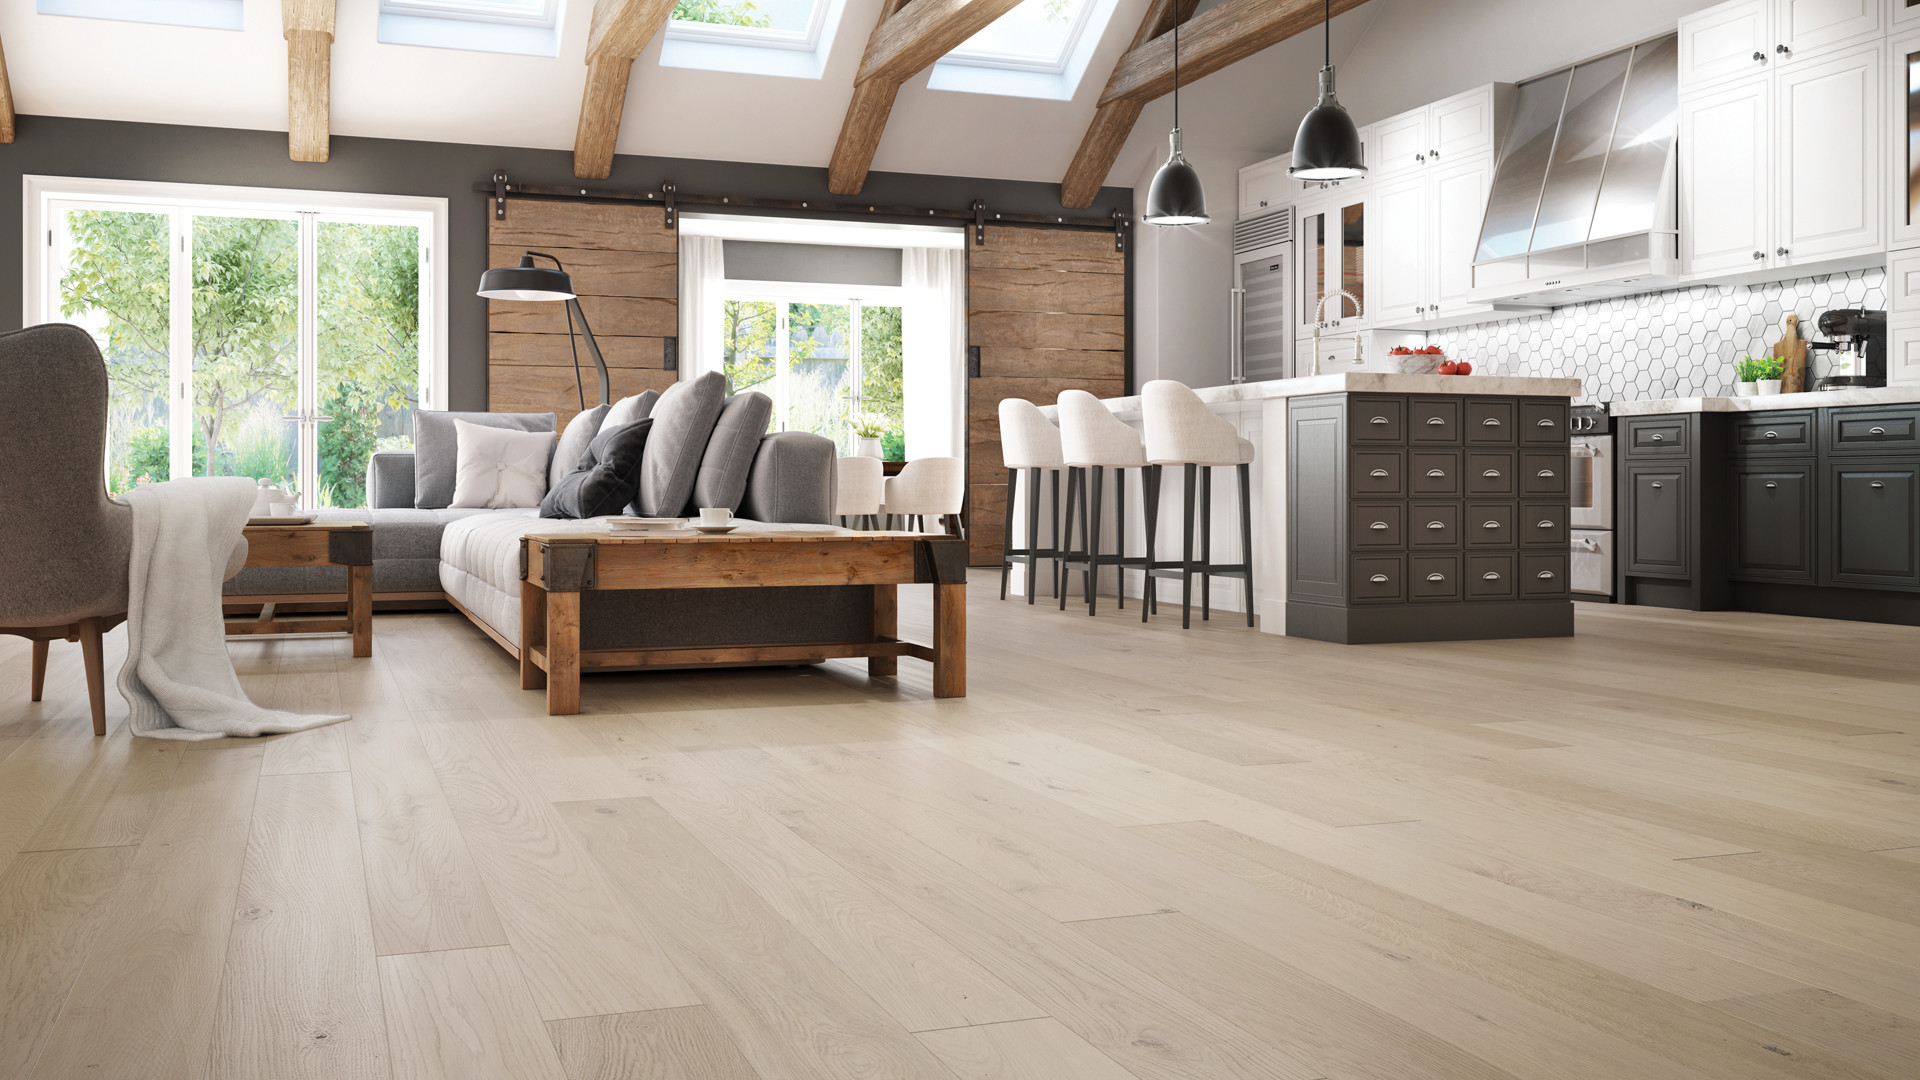 hardwood floor installation process of 4 latest hardwood flooring trends of 2018 lauzon flooring throughout this technology brings your hardwood floors and well being to a new level by improving indoor air quality by up to 85 and decomposing up to 99 6 of